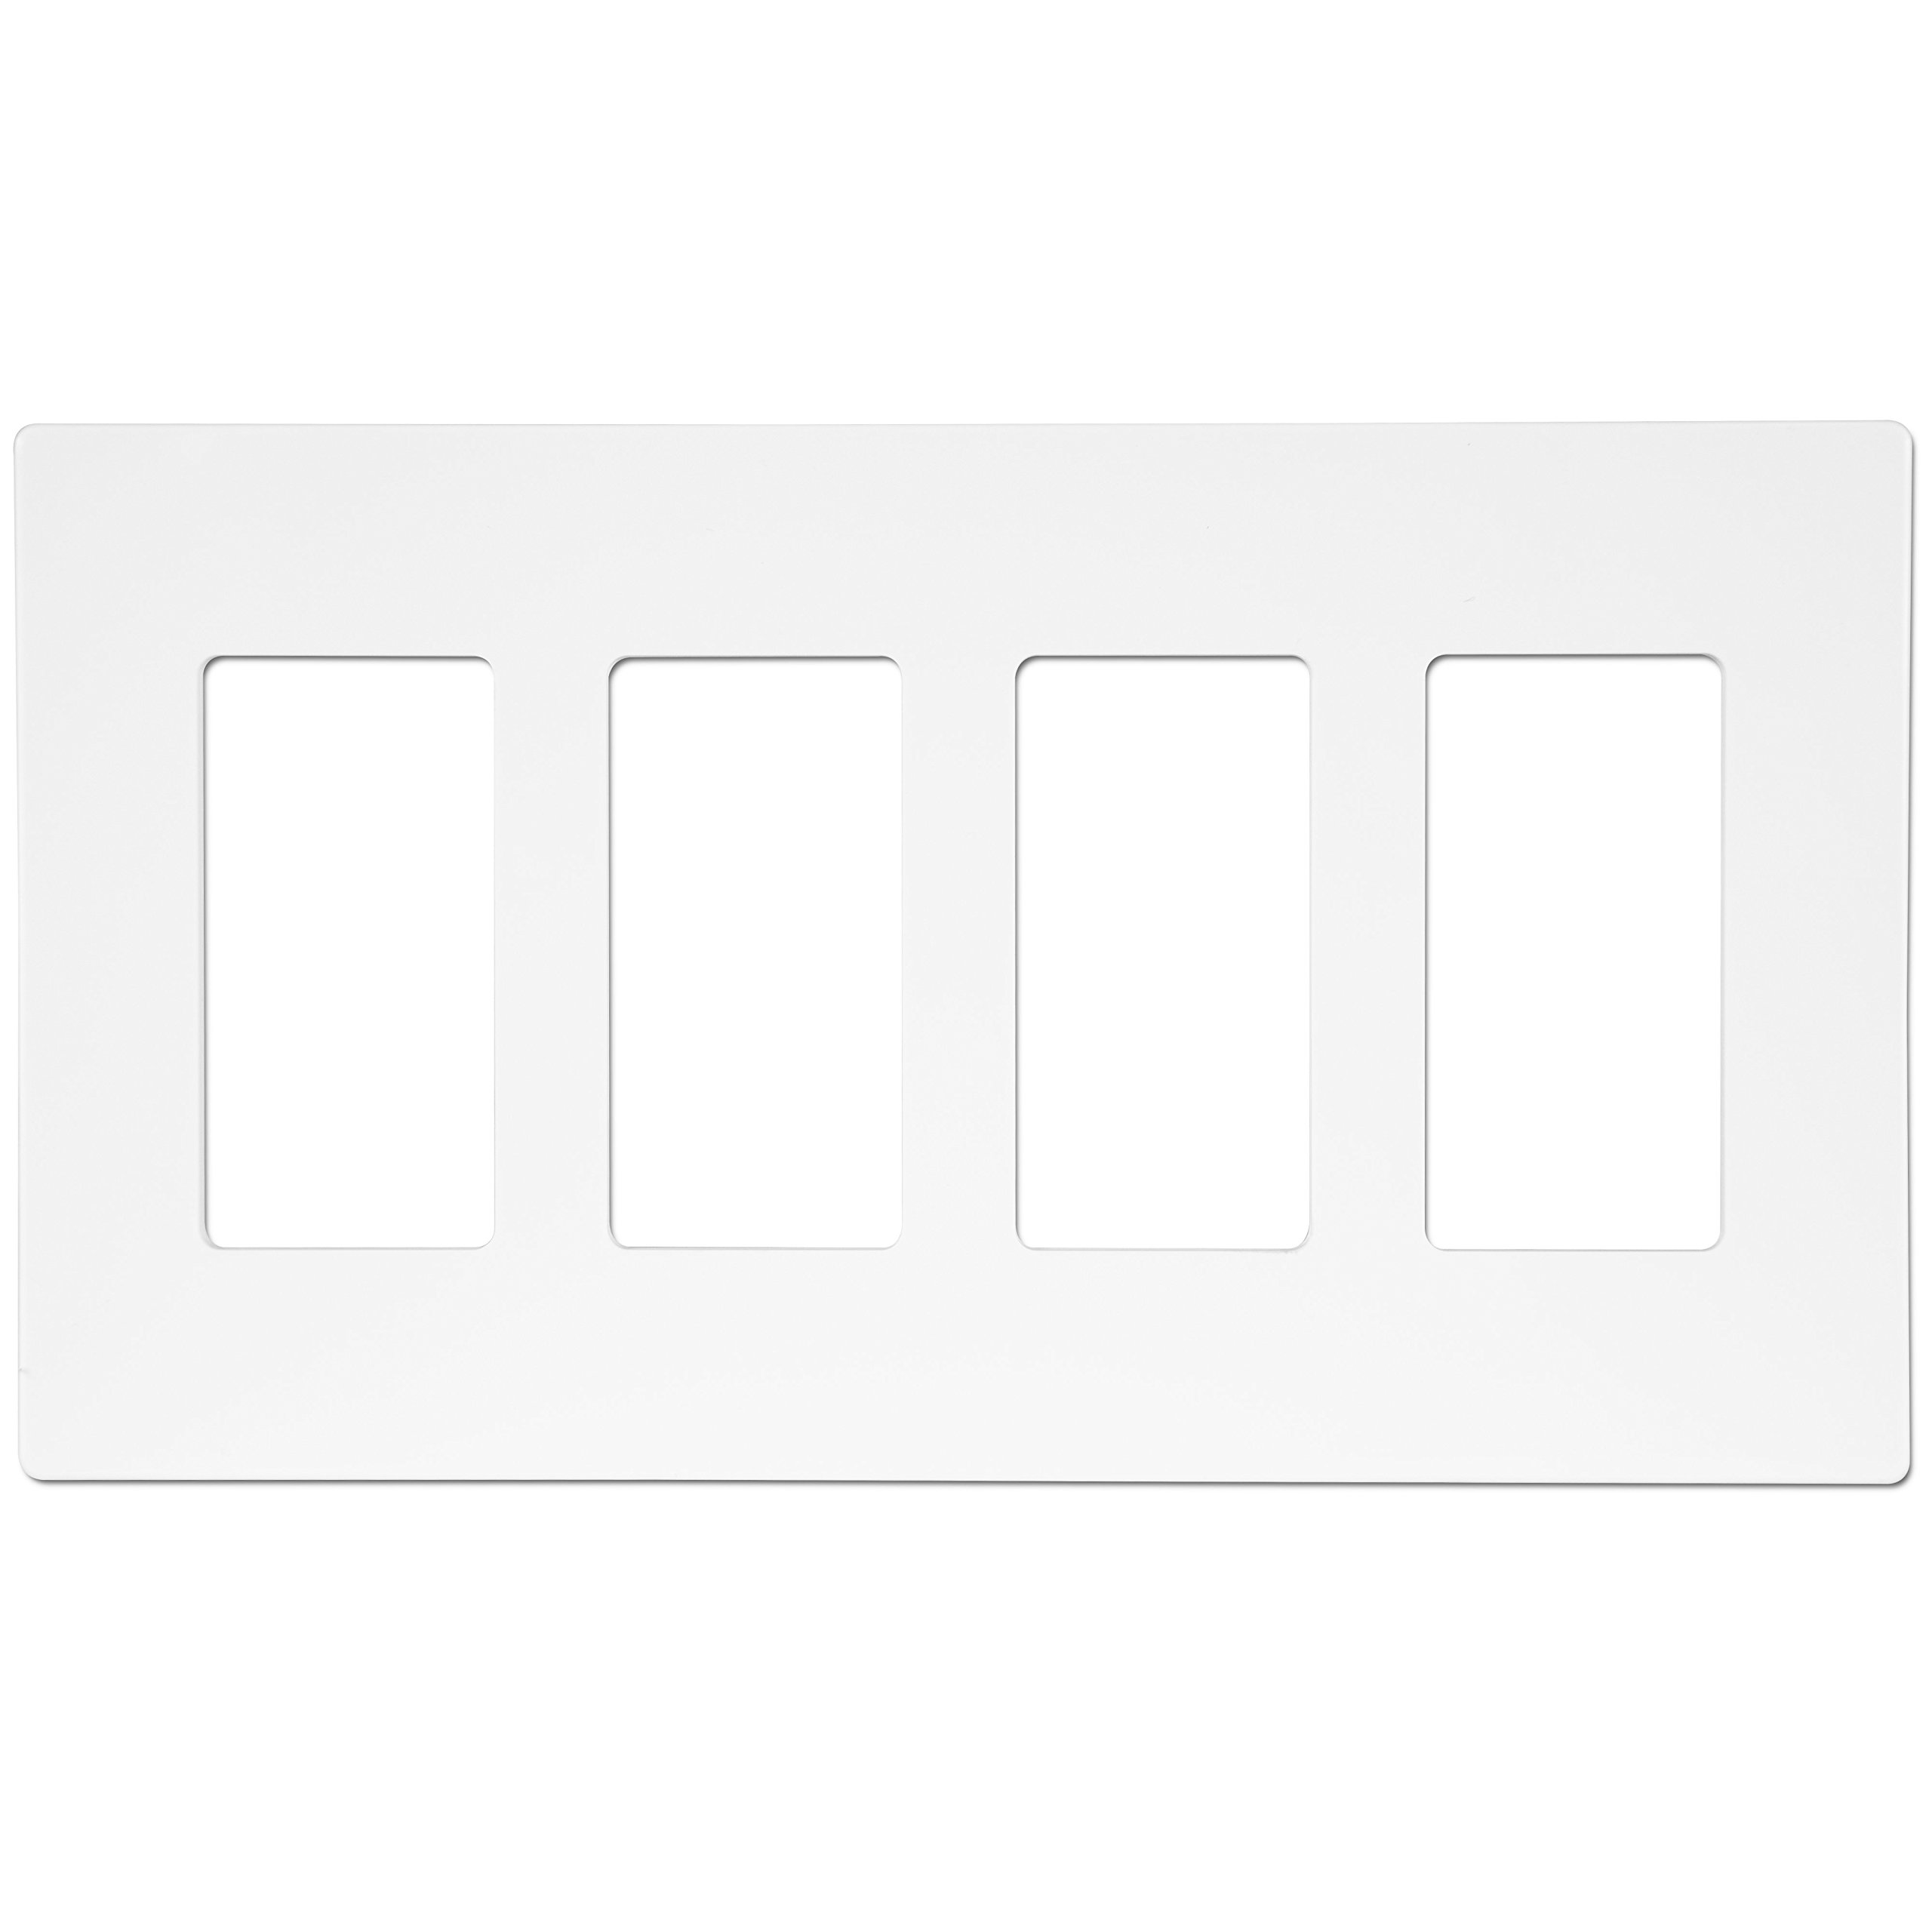 Enerlites SI8834-W Screw-less Decorator Switch Wall Plate by Child Safe Cover Plate, 4-Gang Standard Size, Unbreakable PC Material, White